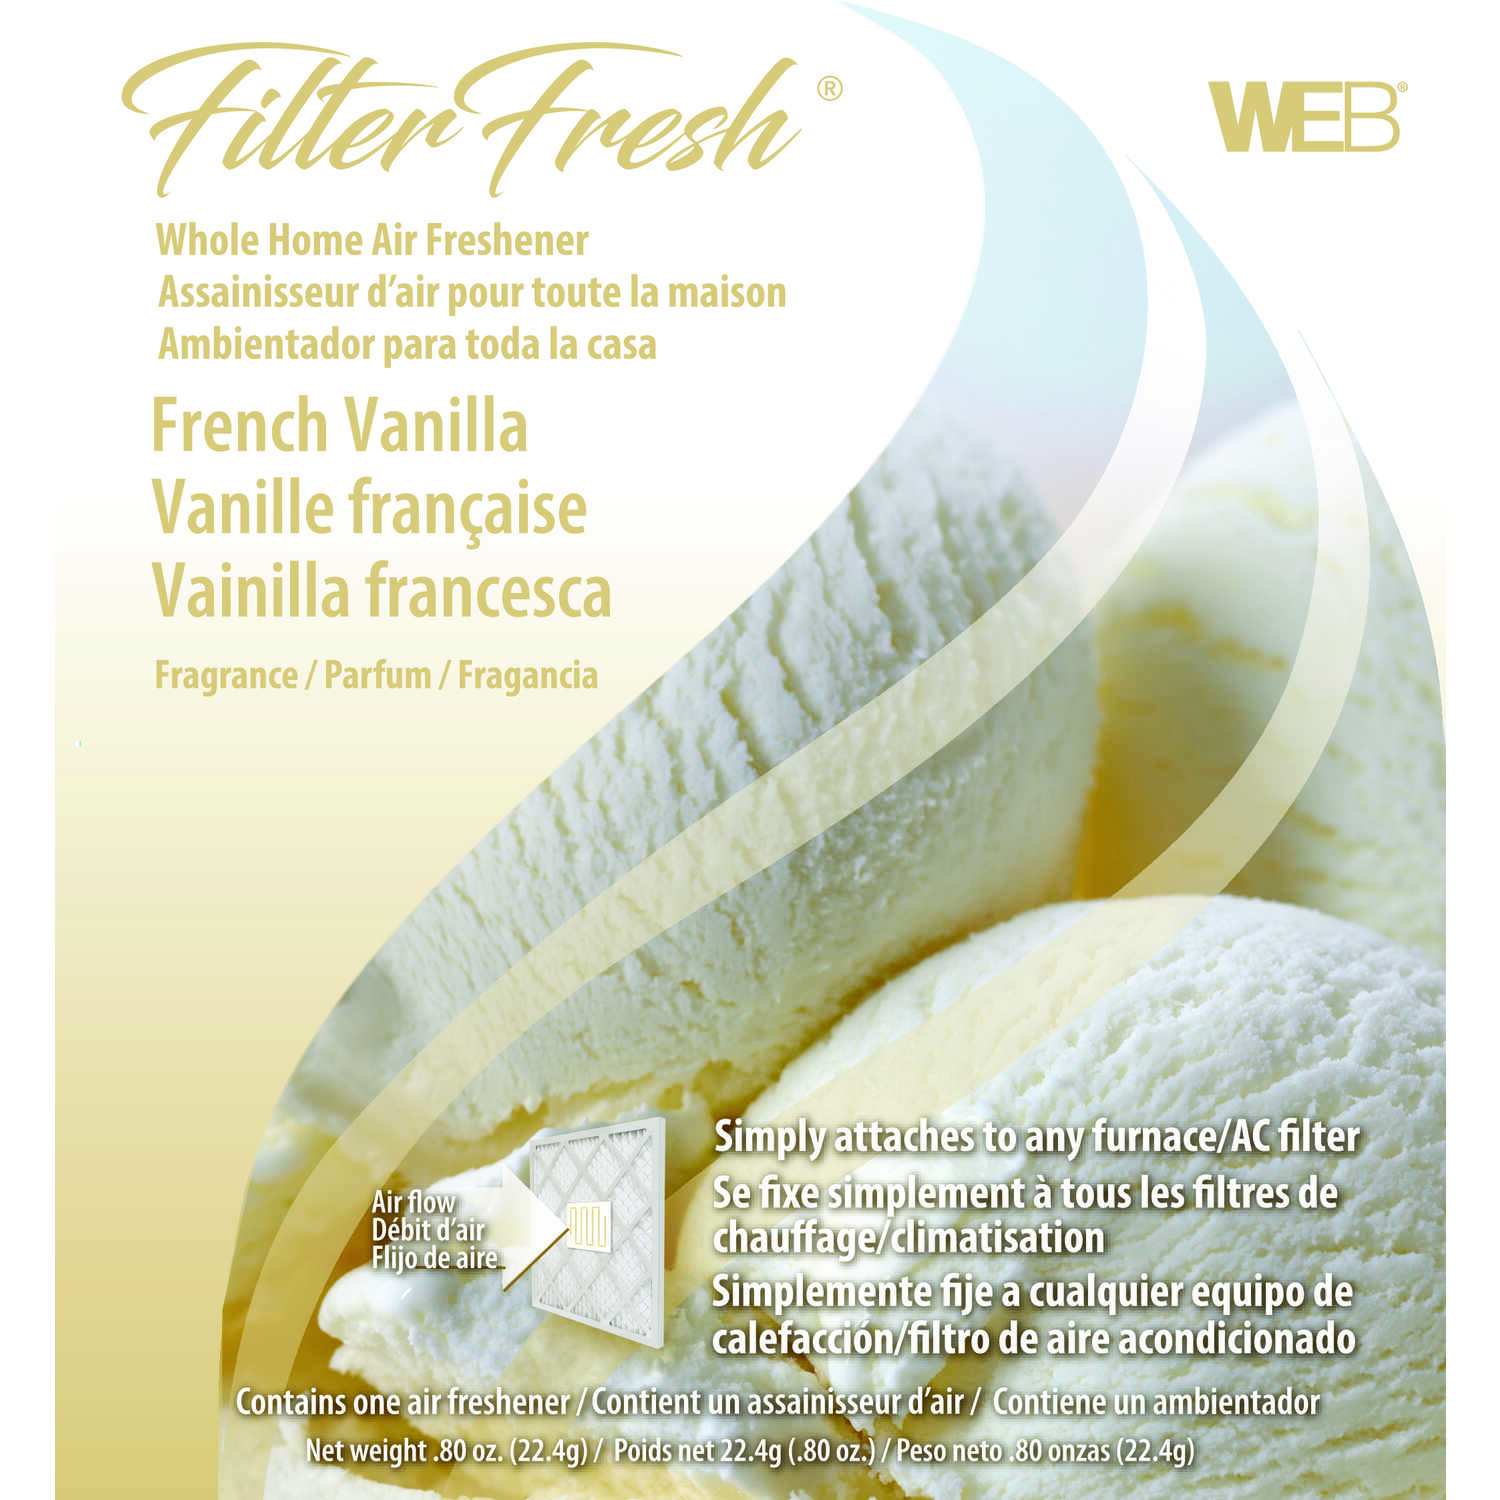 Web  Filter Fresh  French Vanilla Scent Air Freshener  0.8 oz. Gel